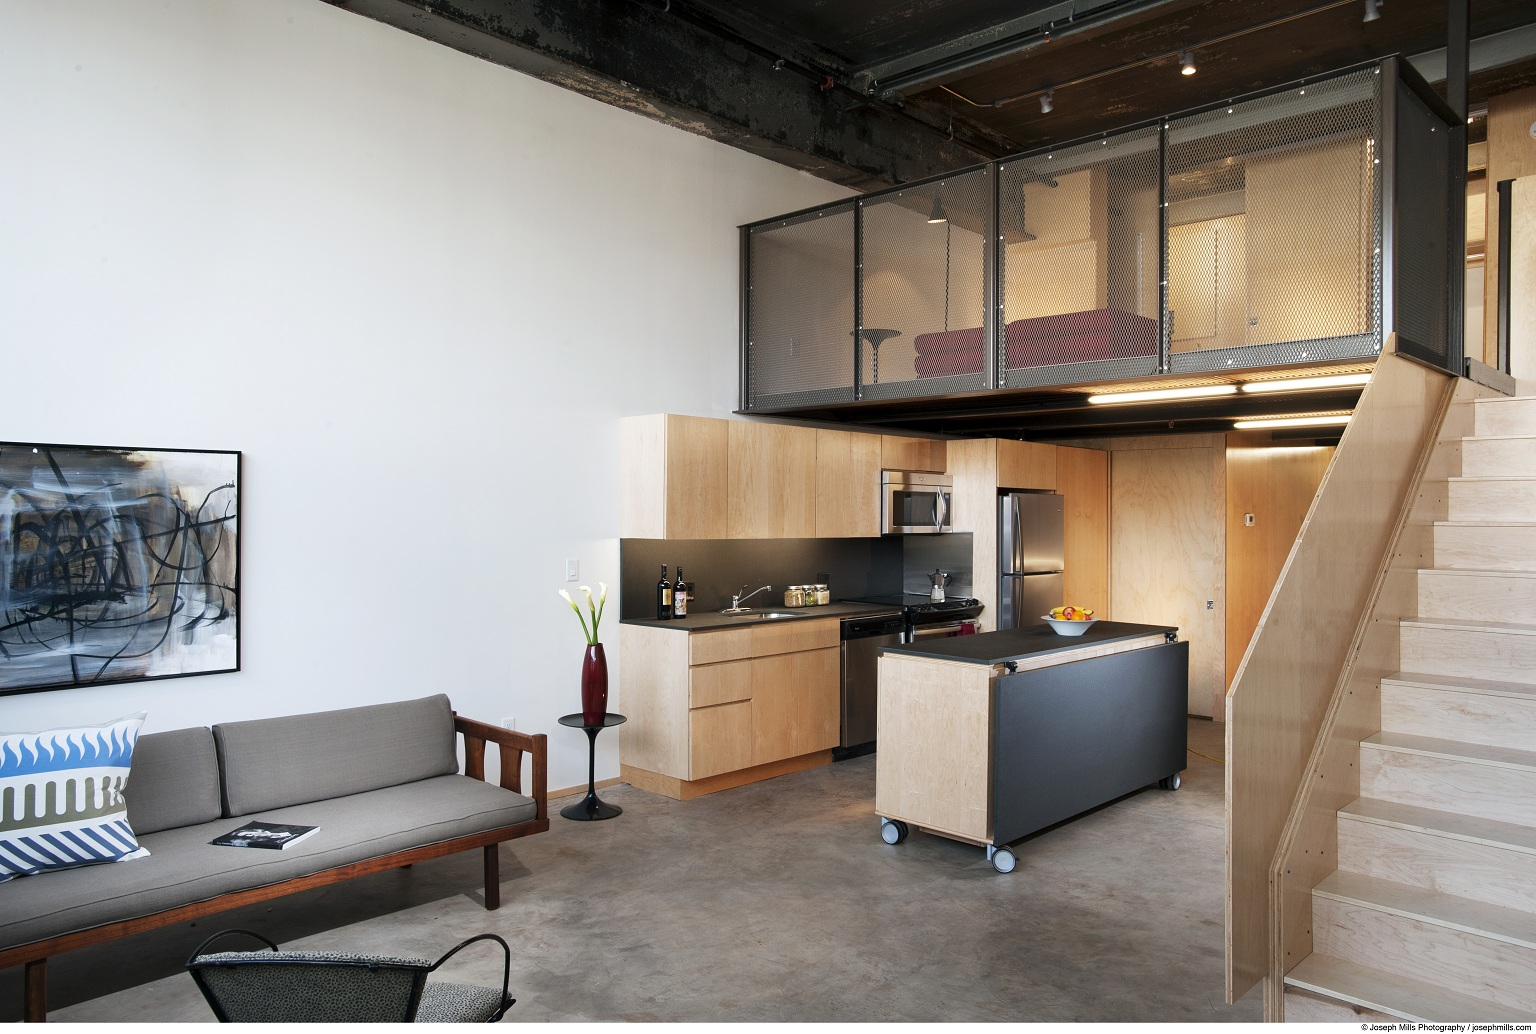 Guardian Lofts Architect Magazine Oklahoma City United States Multifami